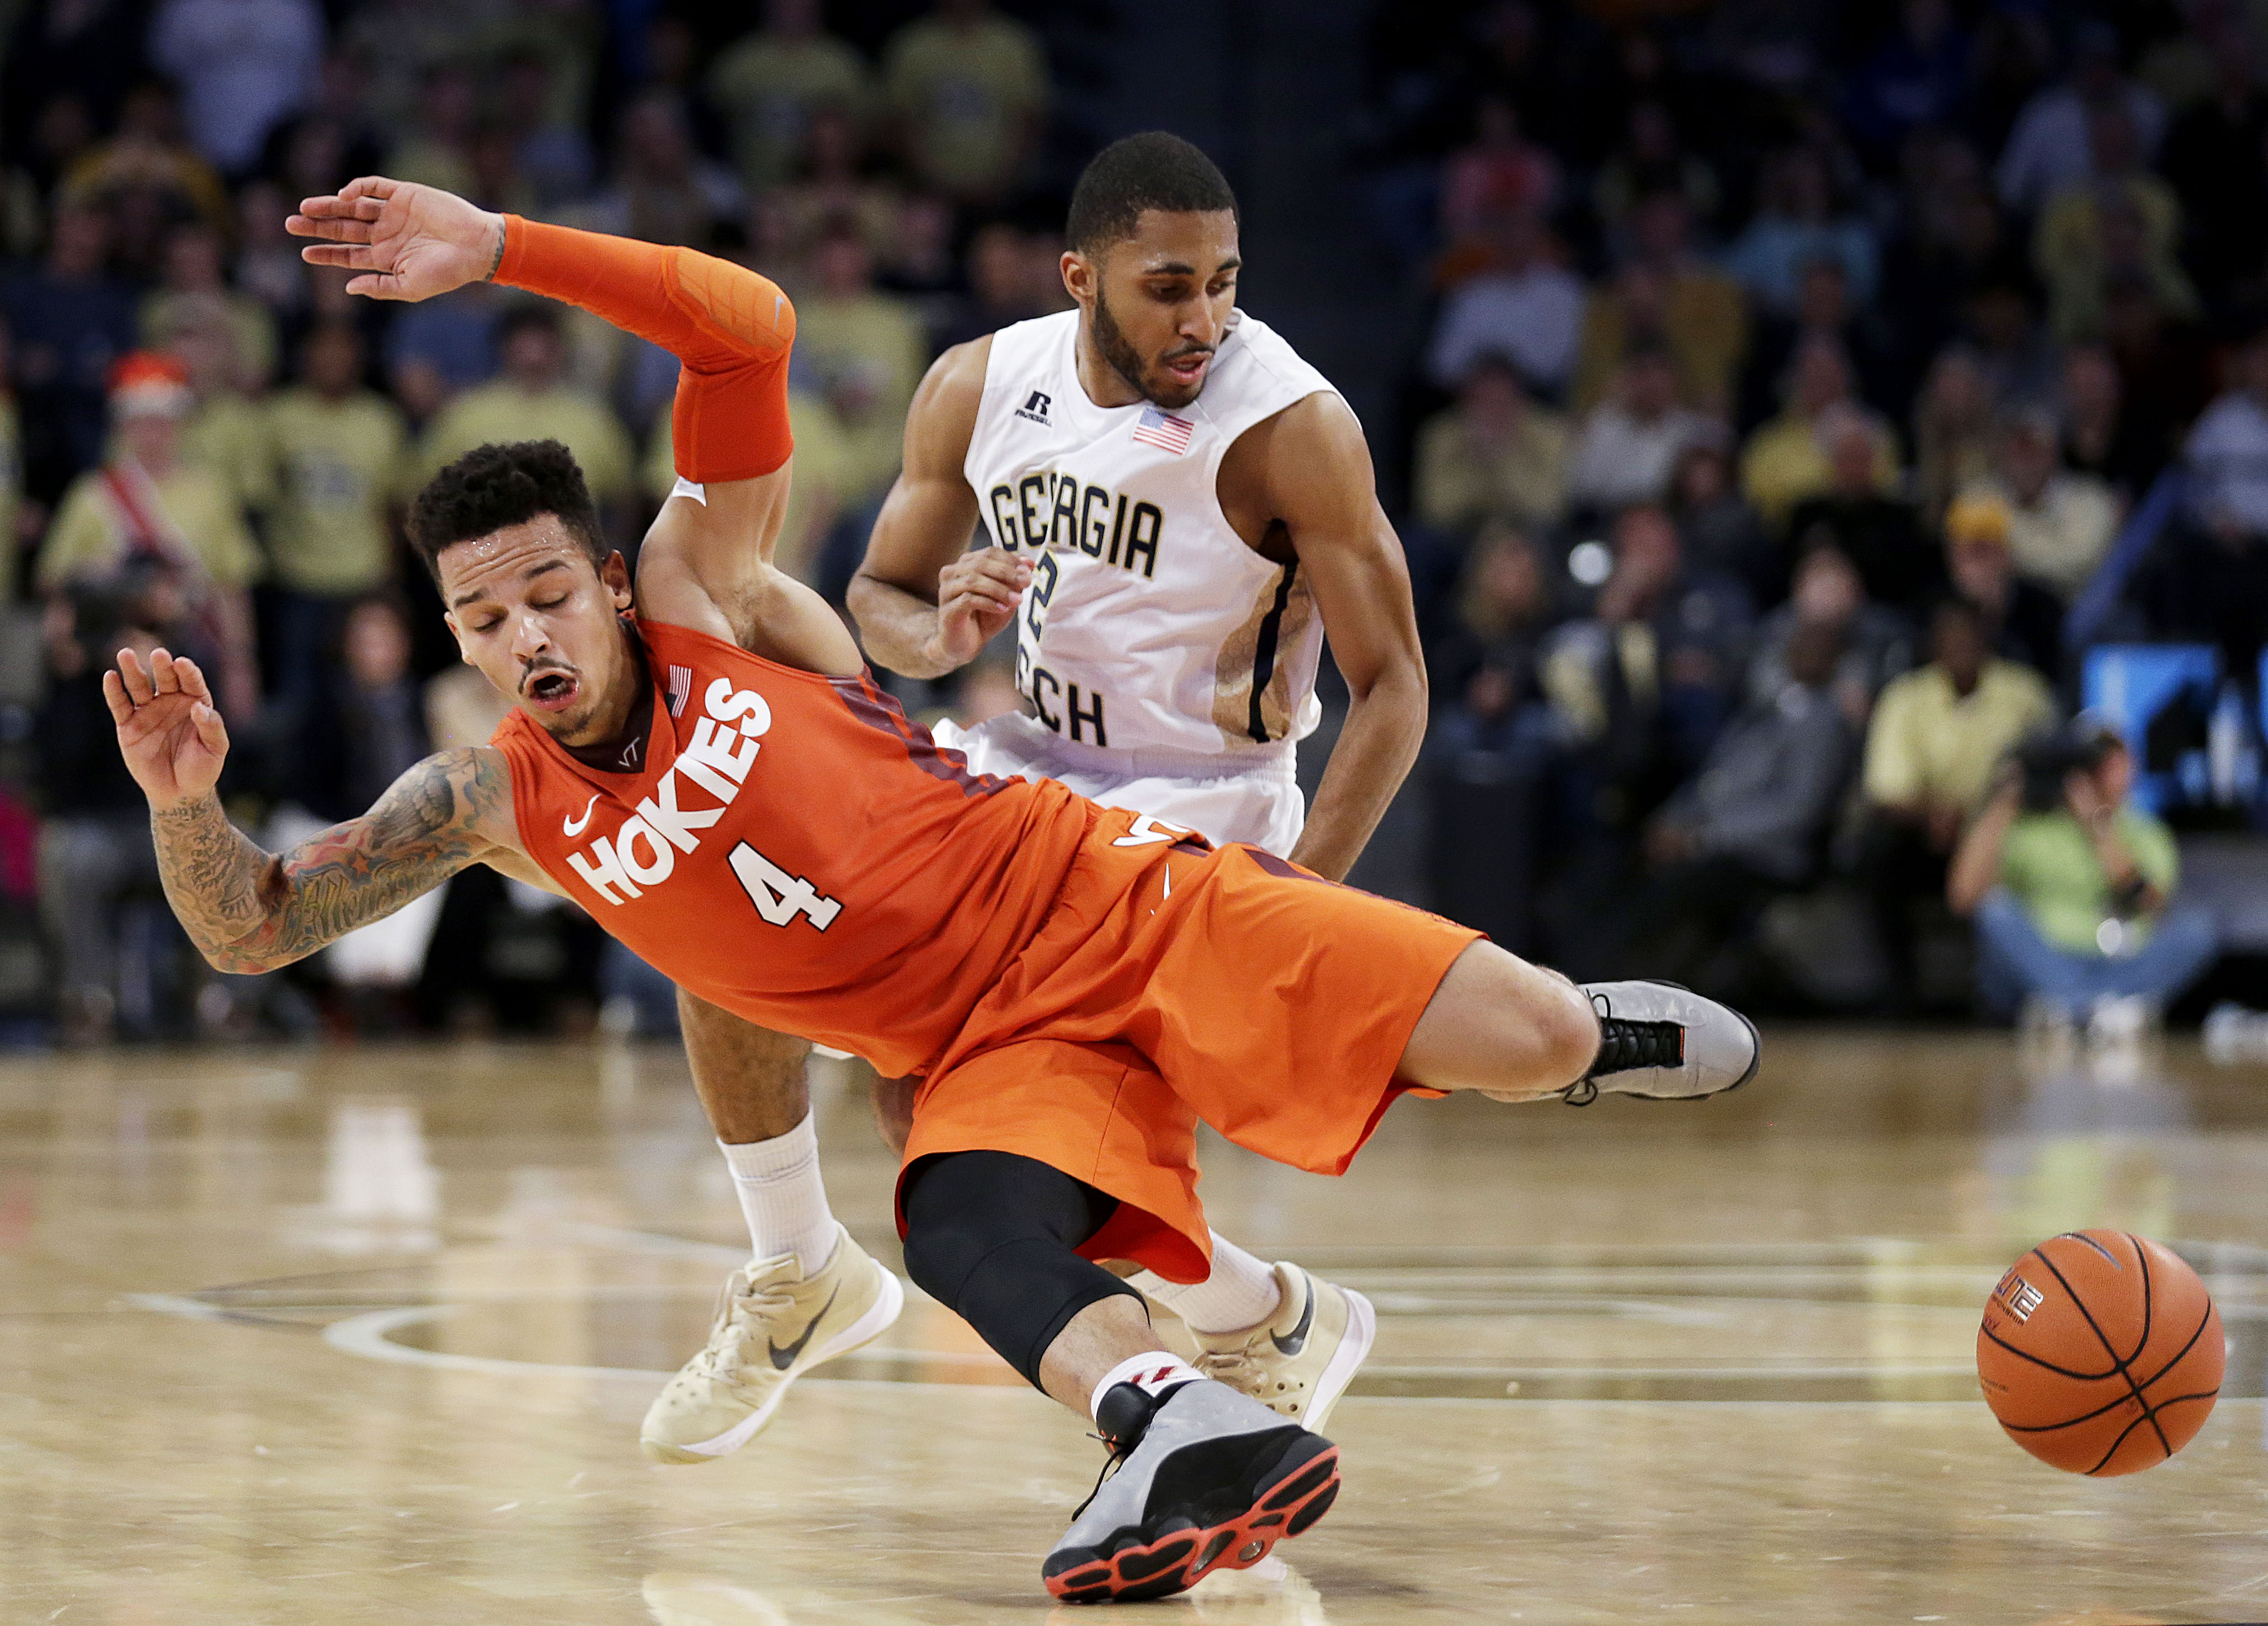 Virginia Tech's Seth Allen, foreground, collides with Georgia Tech's Adam Smith over a loose ball in the second half of an NCAA college basketball game Saturday, Jan. 16, 2016, in Atlanta. Virginia Tech won 78-77. (AP Photo/David Goldman)